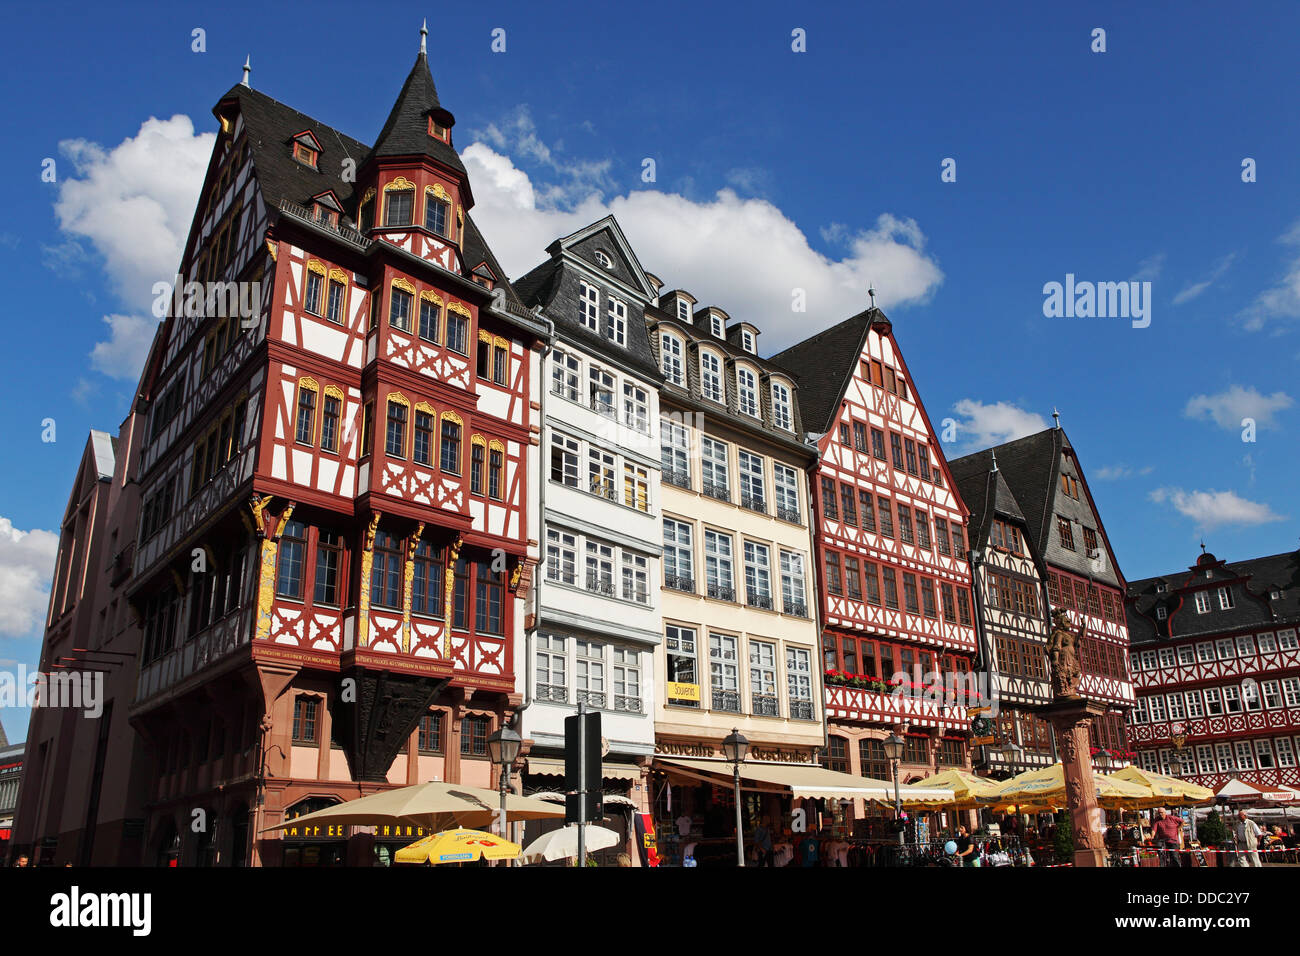 Half-timbered buildings of the Samstagsberg in Frankfurt-am-Main, Germany. - Stock Image